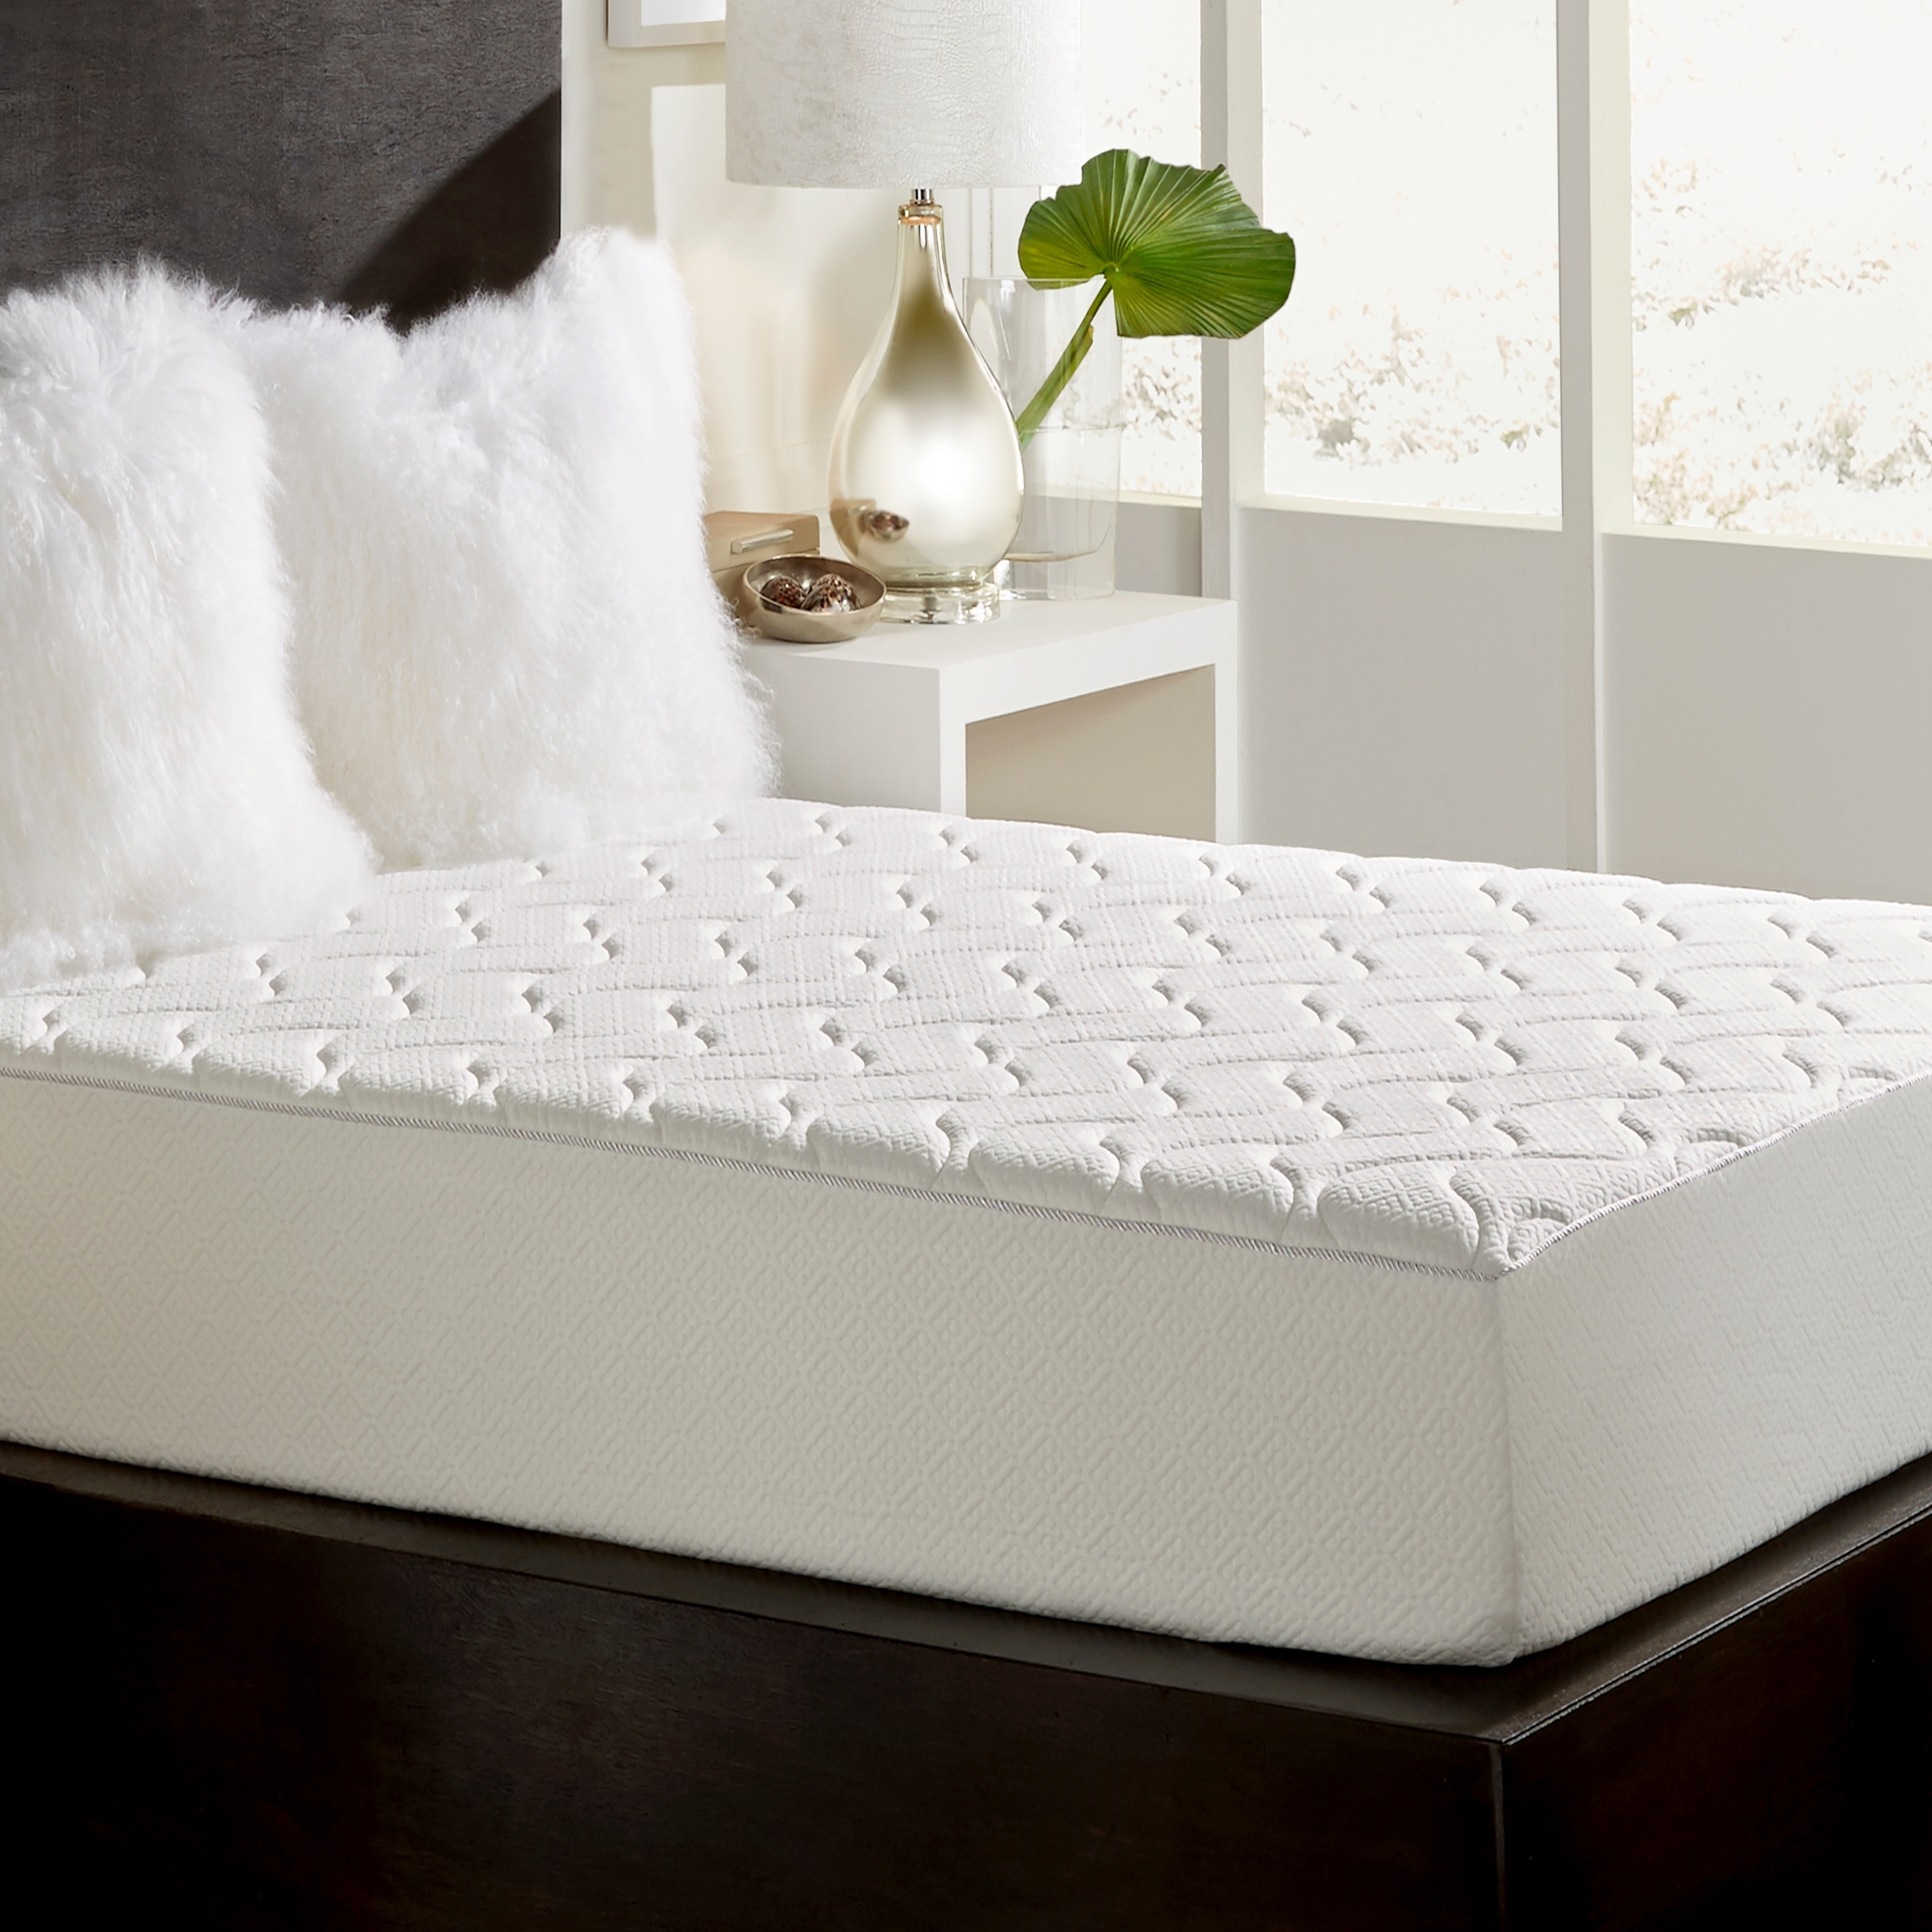 Loftworks Full Size Medium Firm 10 Inch Memory Foam Mattress With Quilted Euro Top Free Shipping Today 6055956